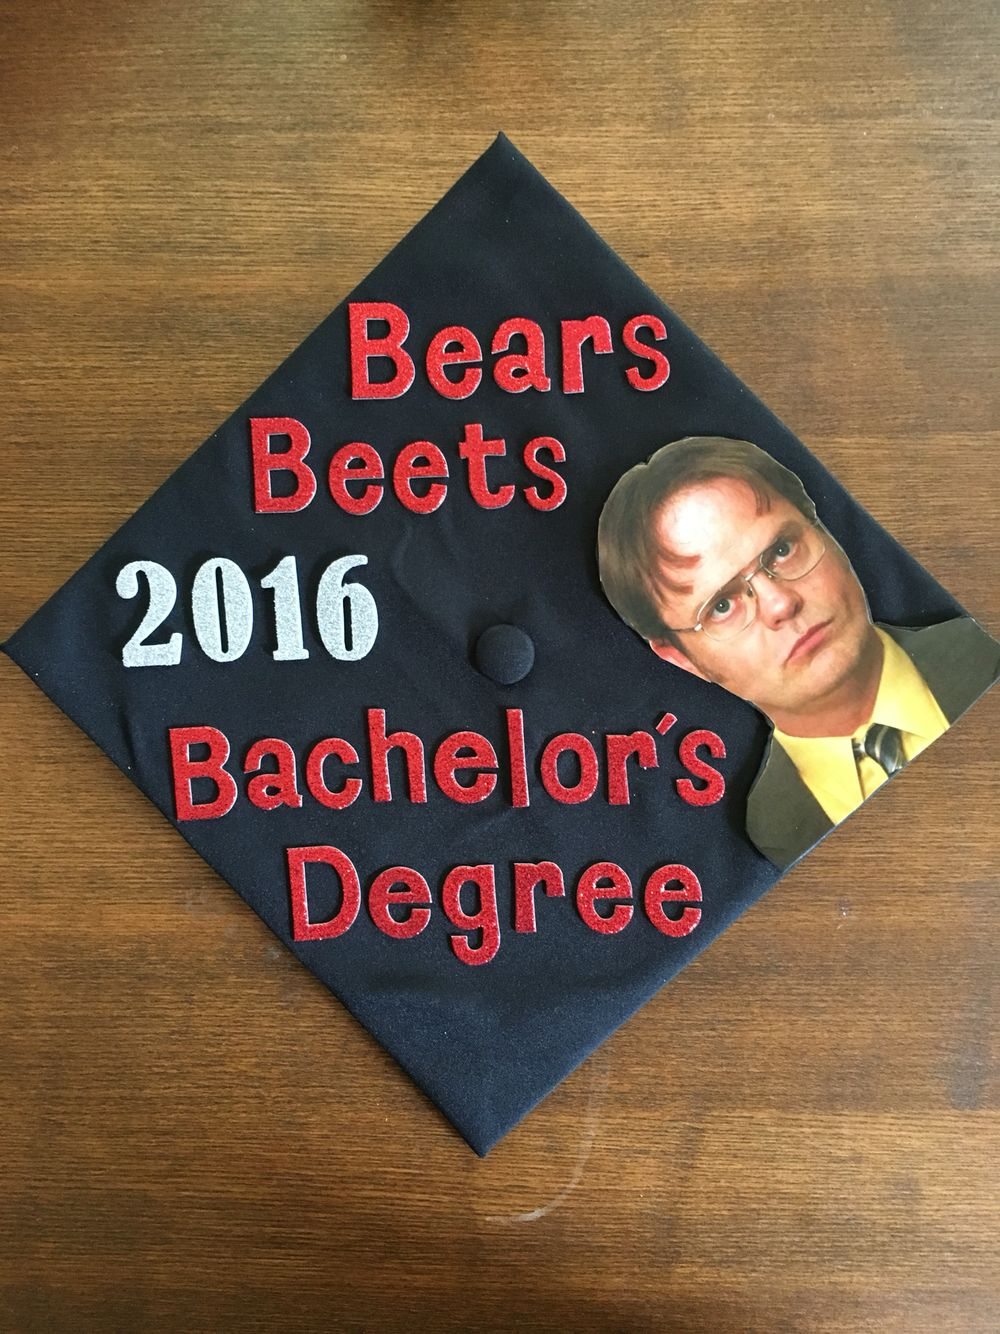 Bears Beets Bachelors Degree Dwight Schrute The Office